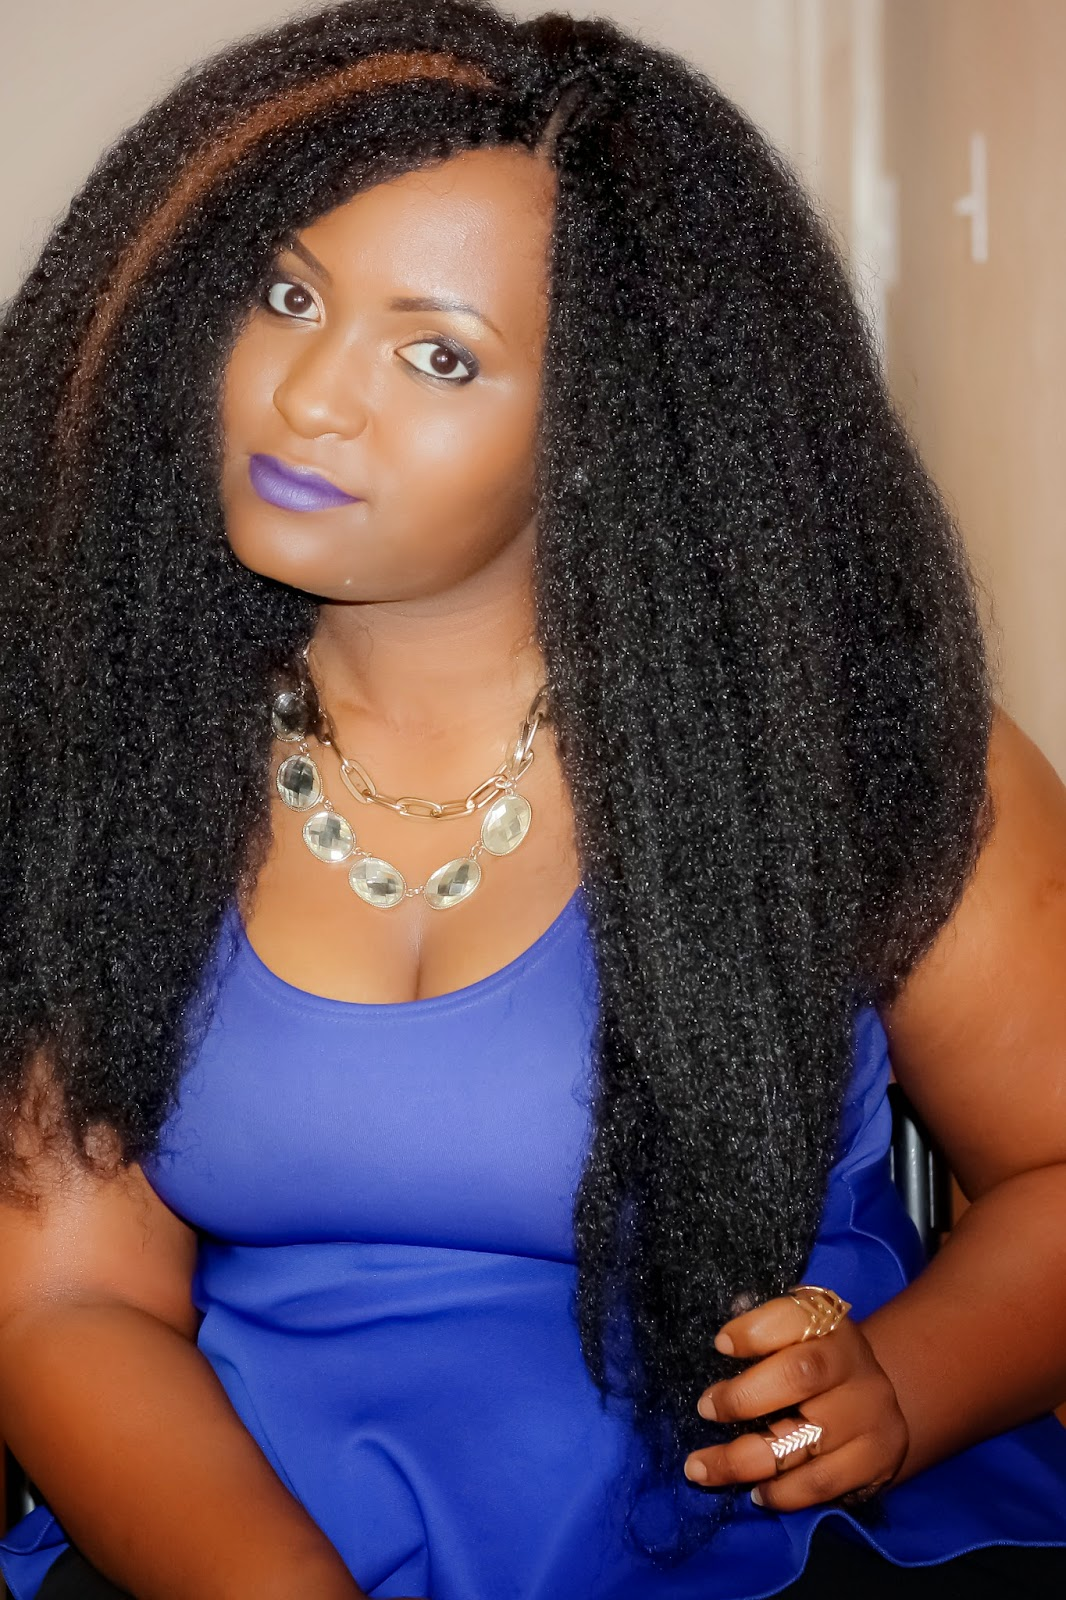 Big Hair, Dont Care: Crotchet Braids - Details, Review, Picture Spam ...